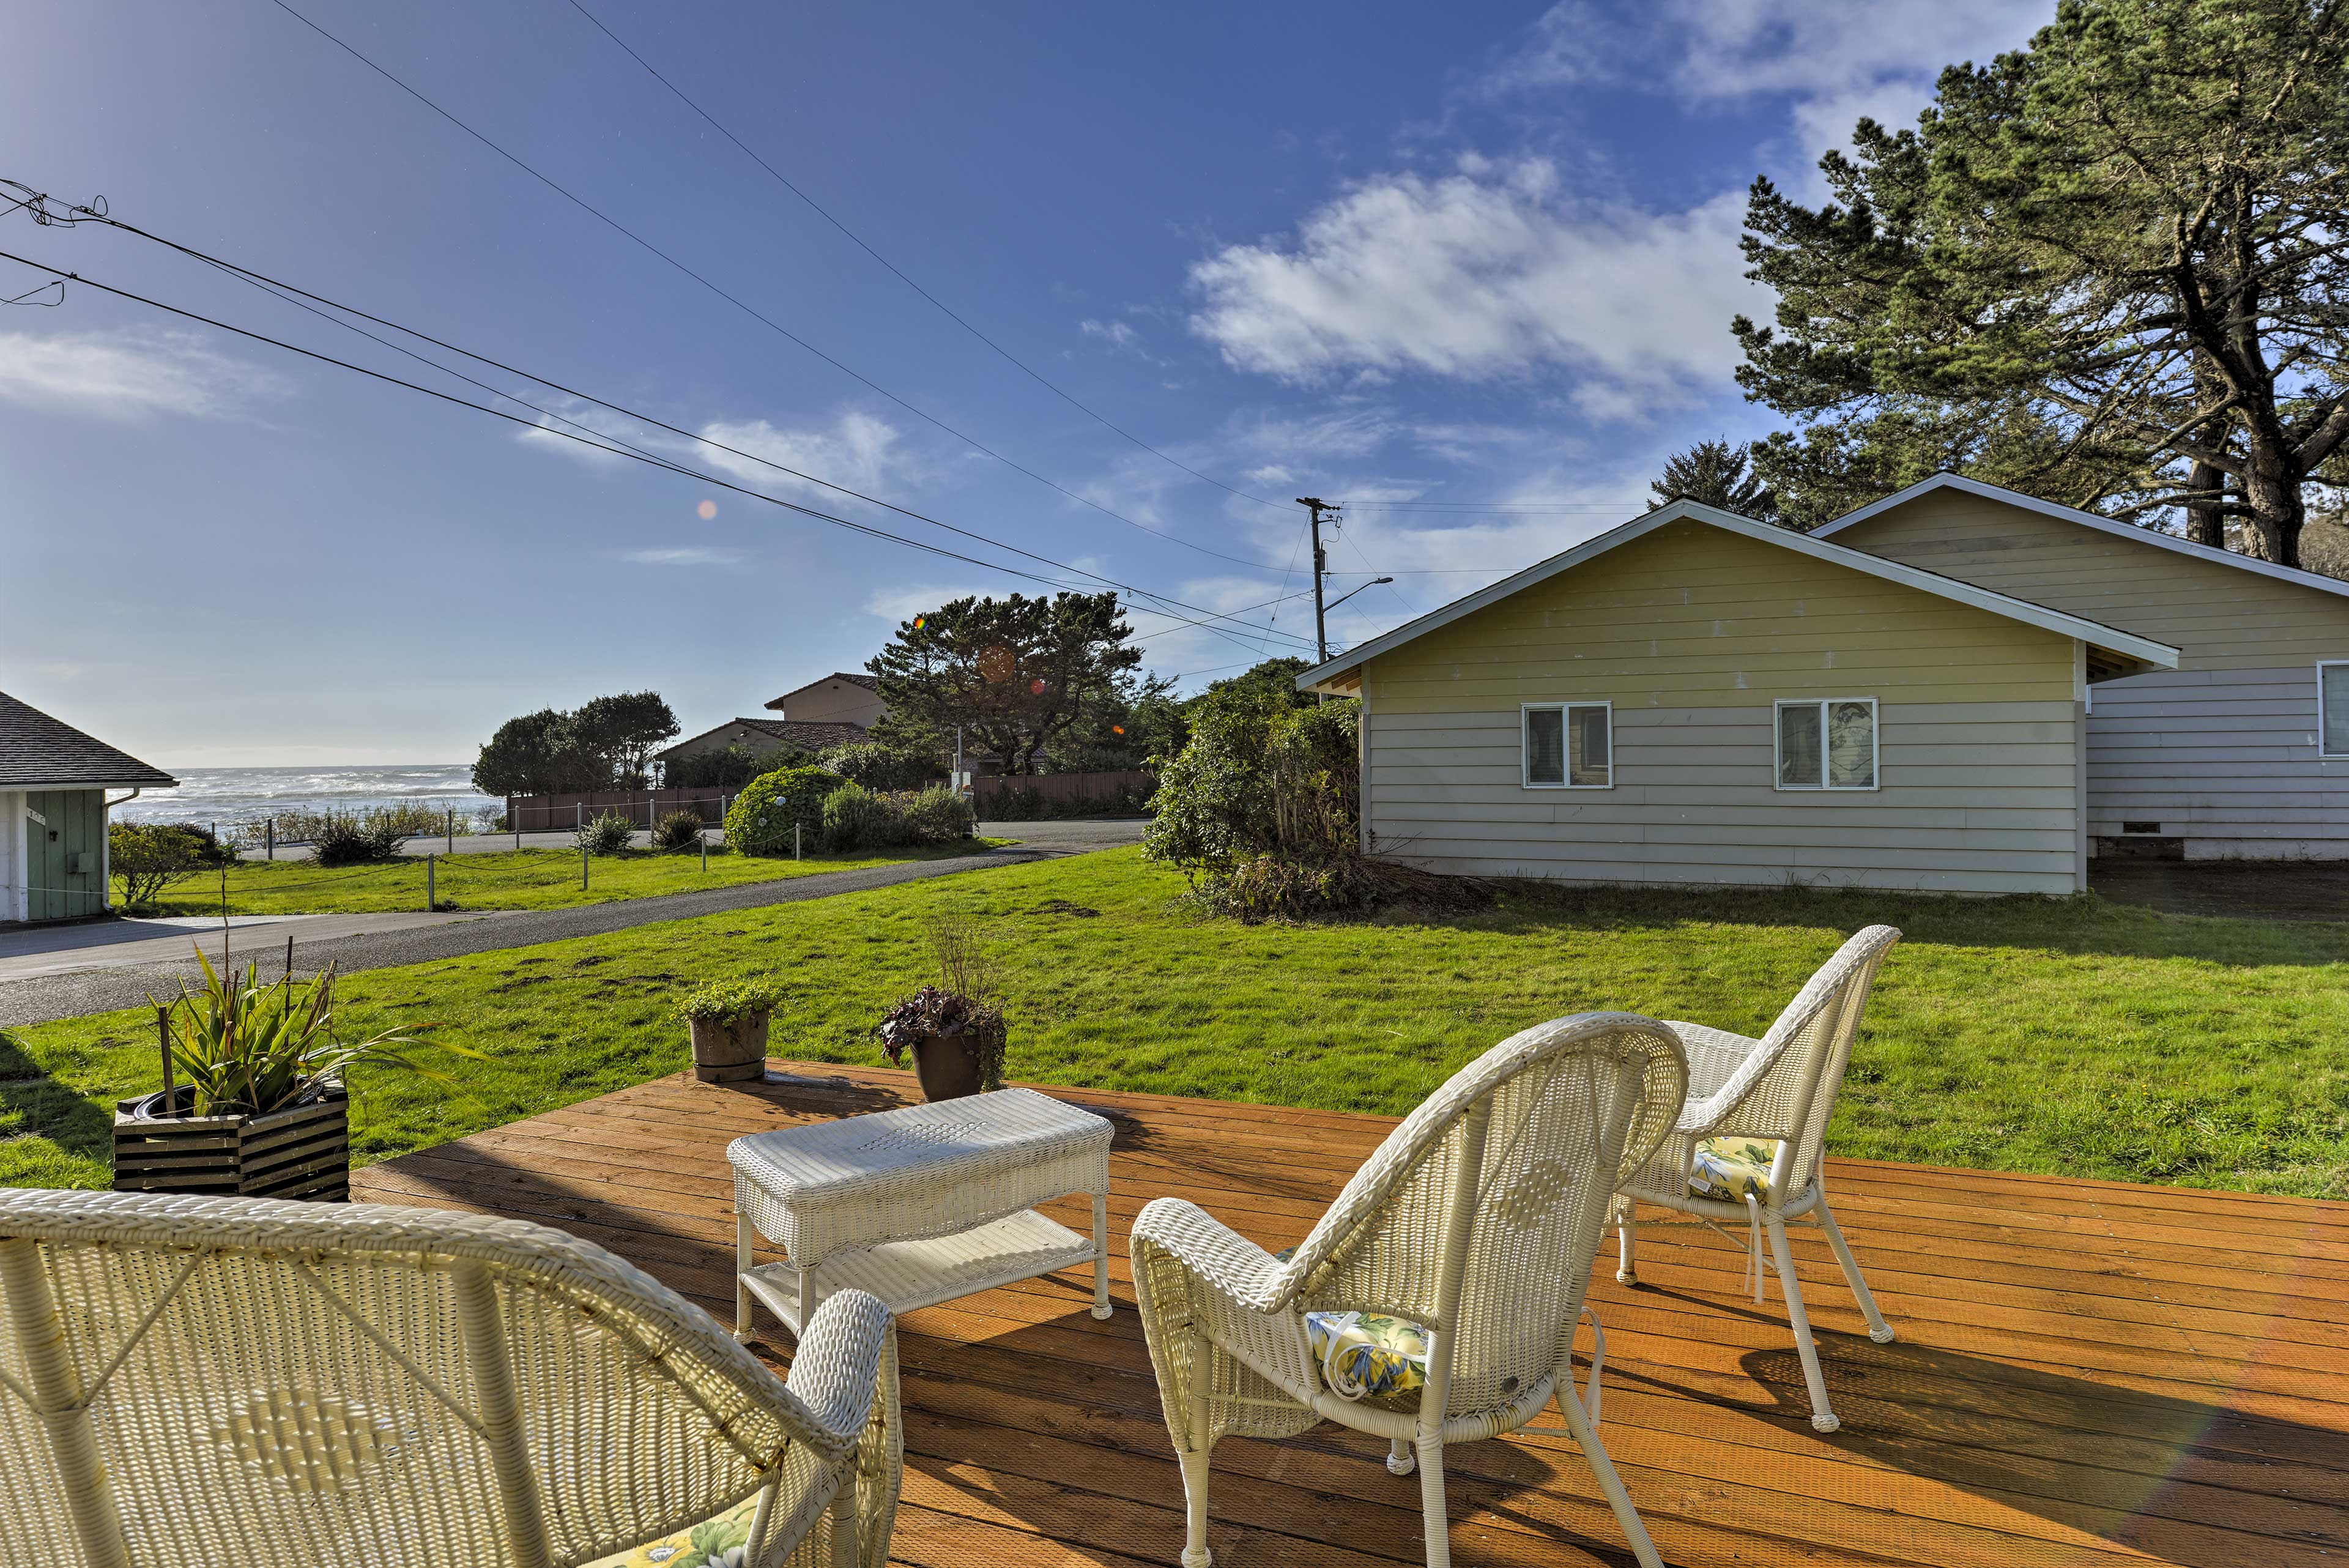 Plan your next escape to this seaside vacation rental in Smith River.